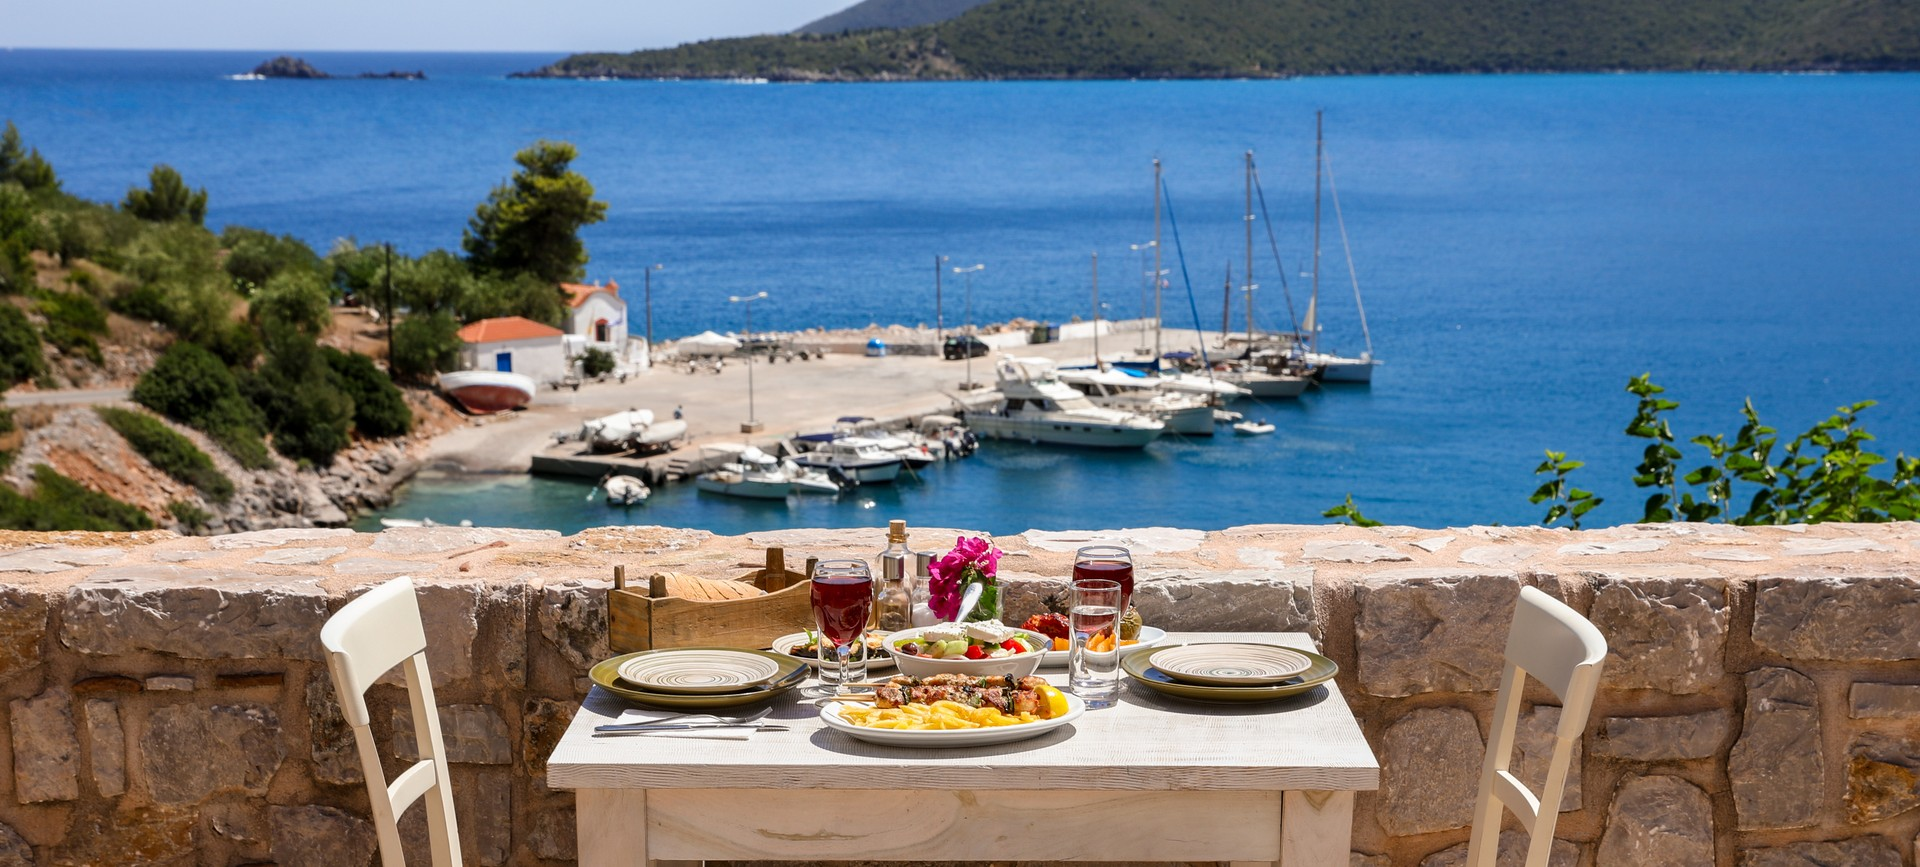 Table set for lunch greece